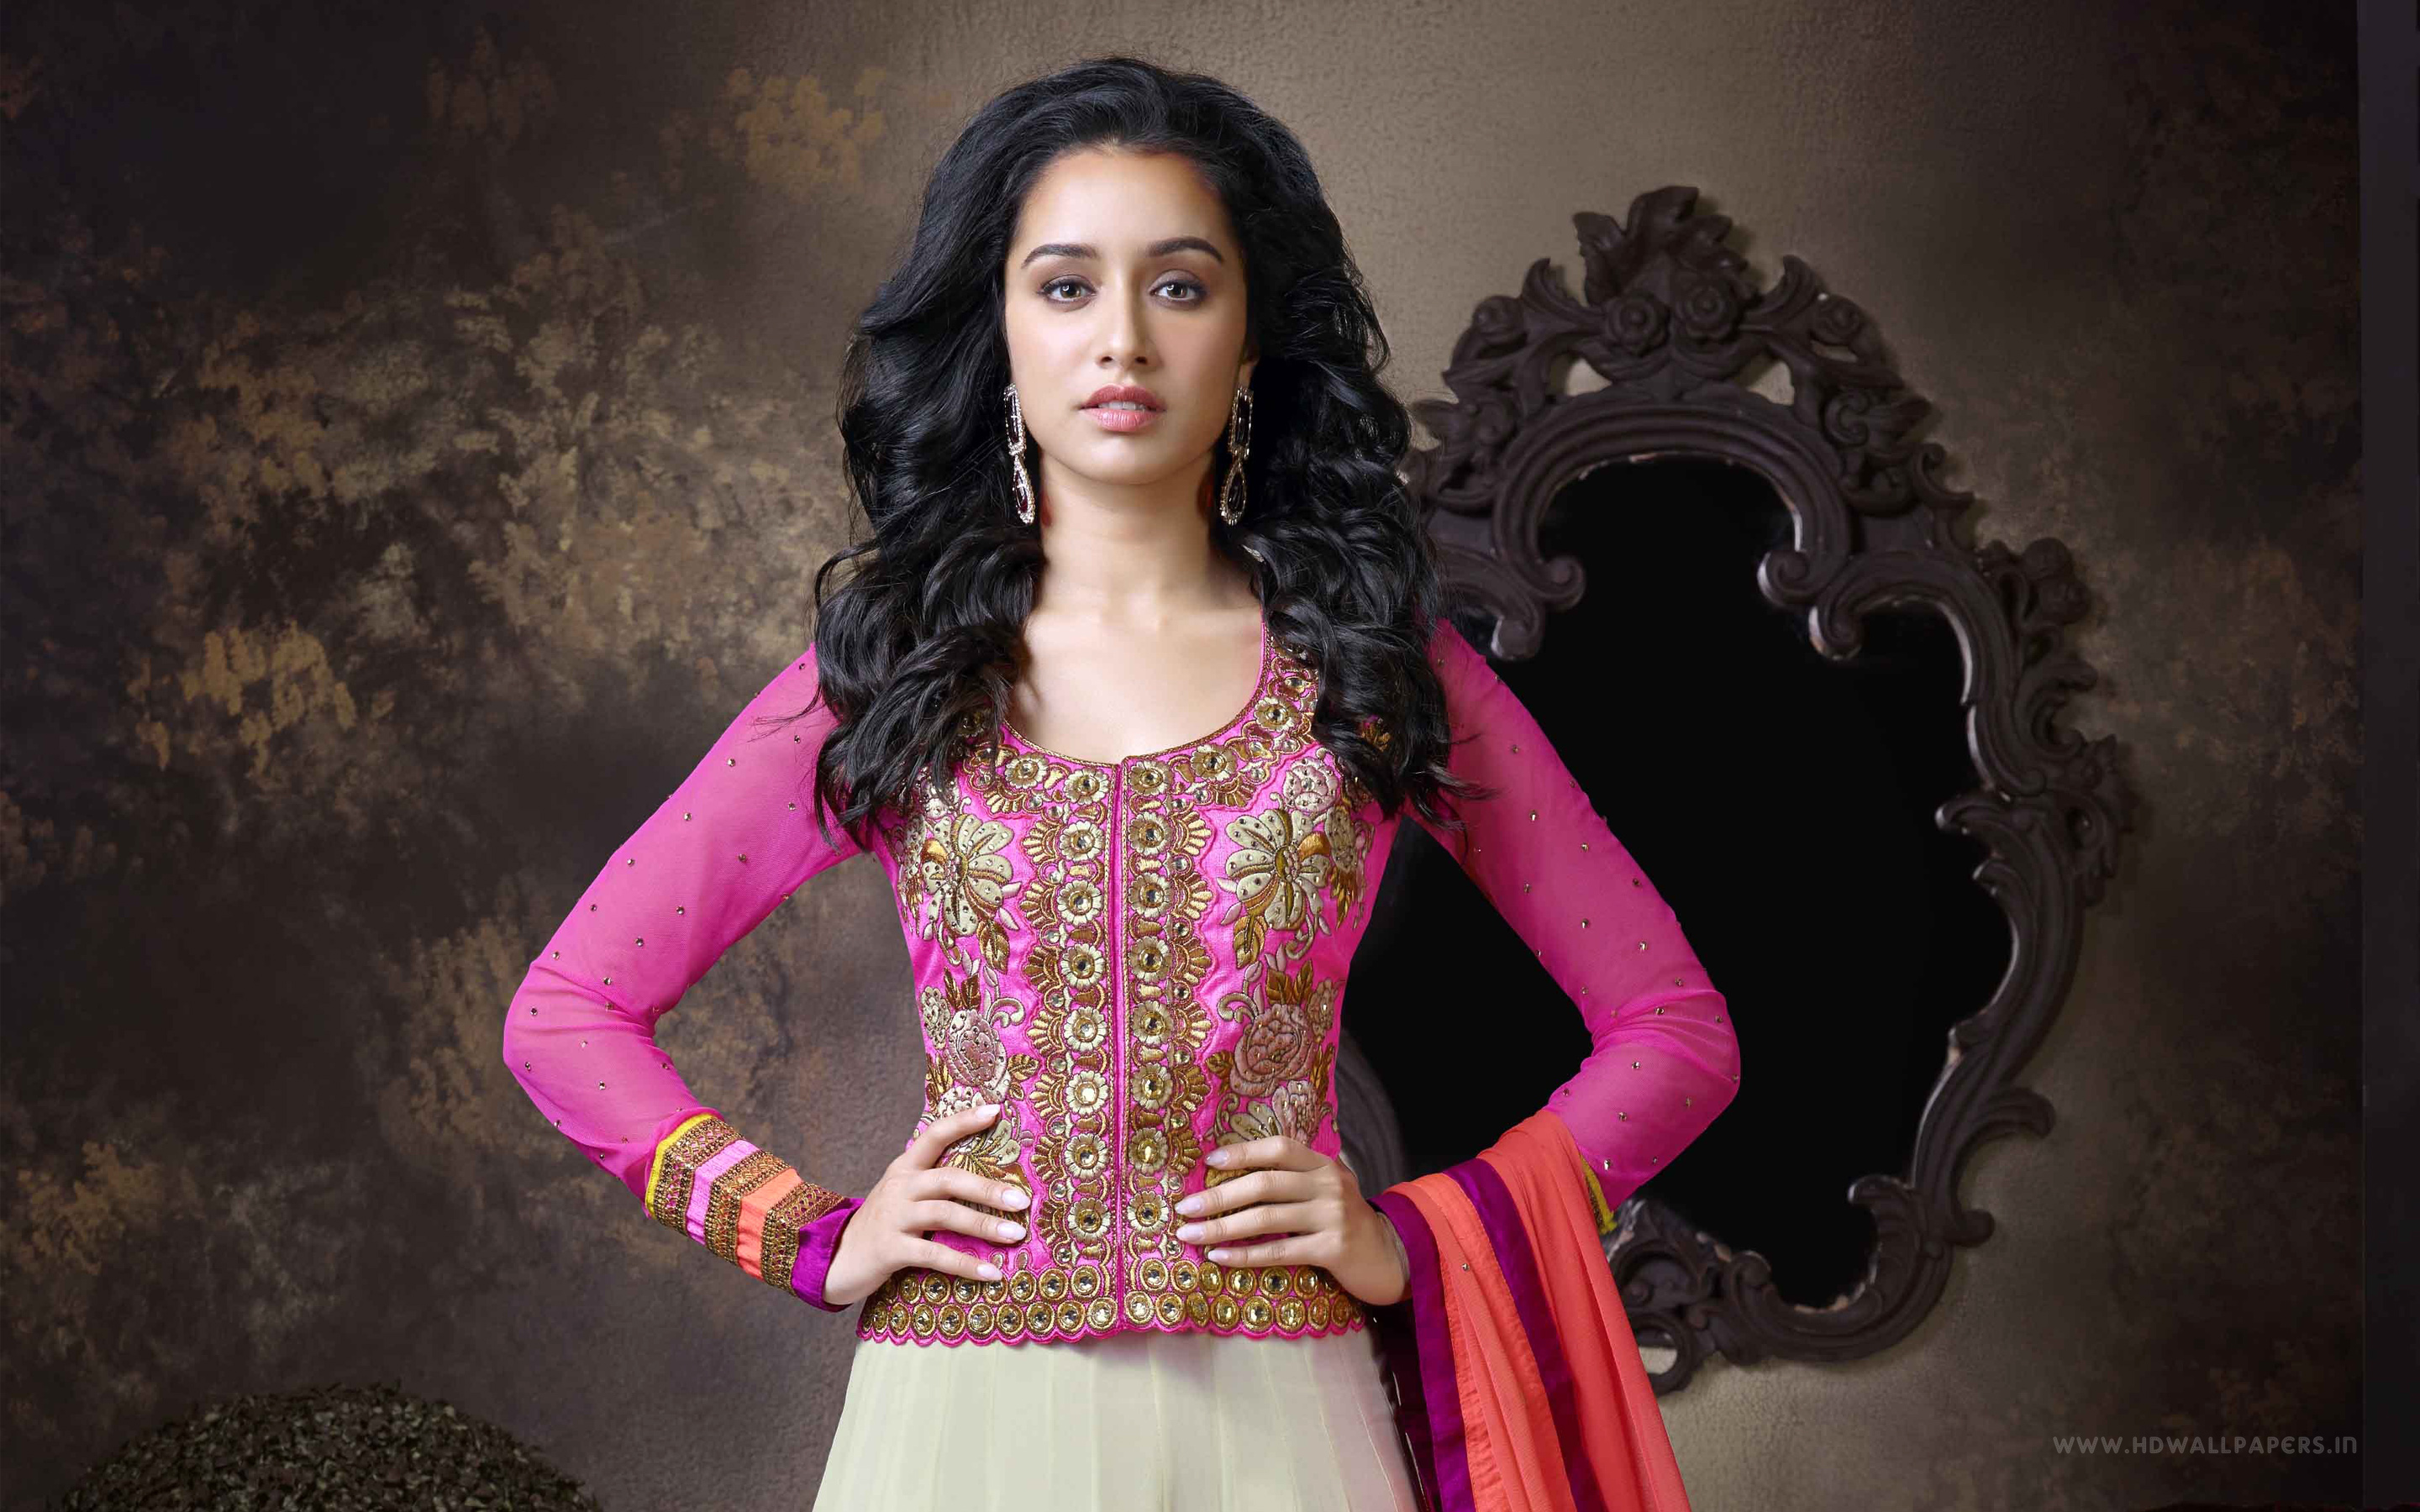 Shraddha Wallpapers 4k For Your Phone And Desktop Screen